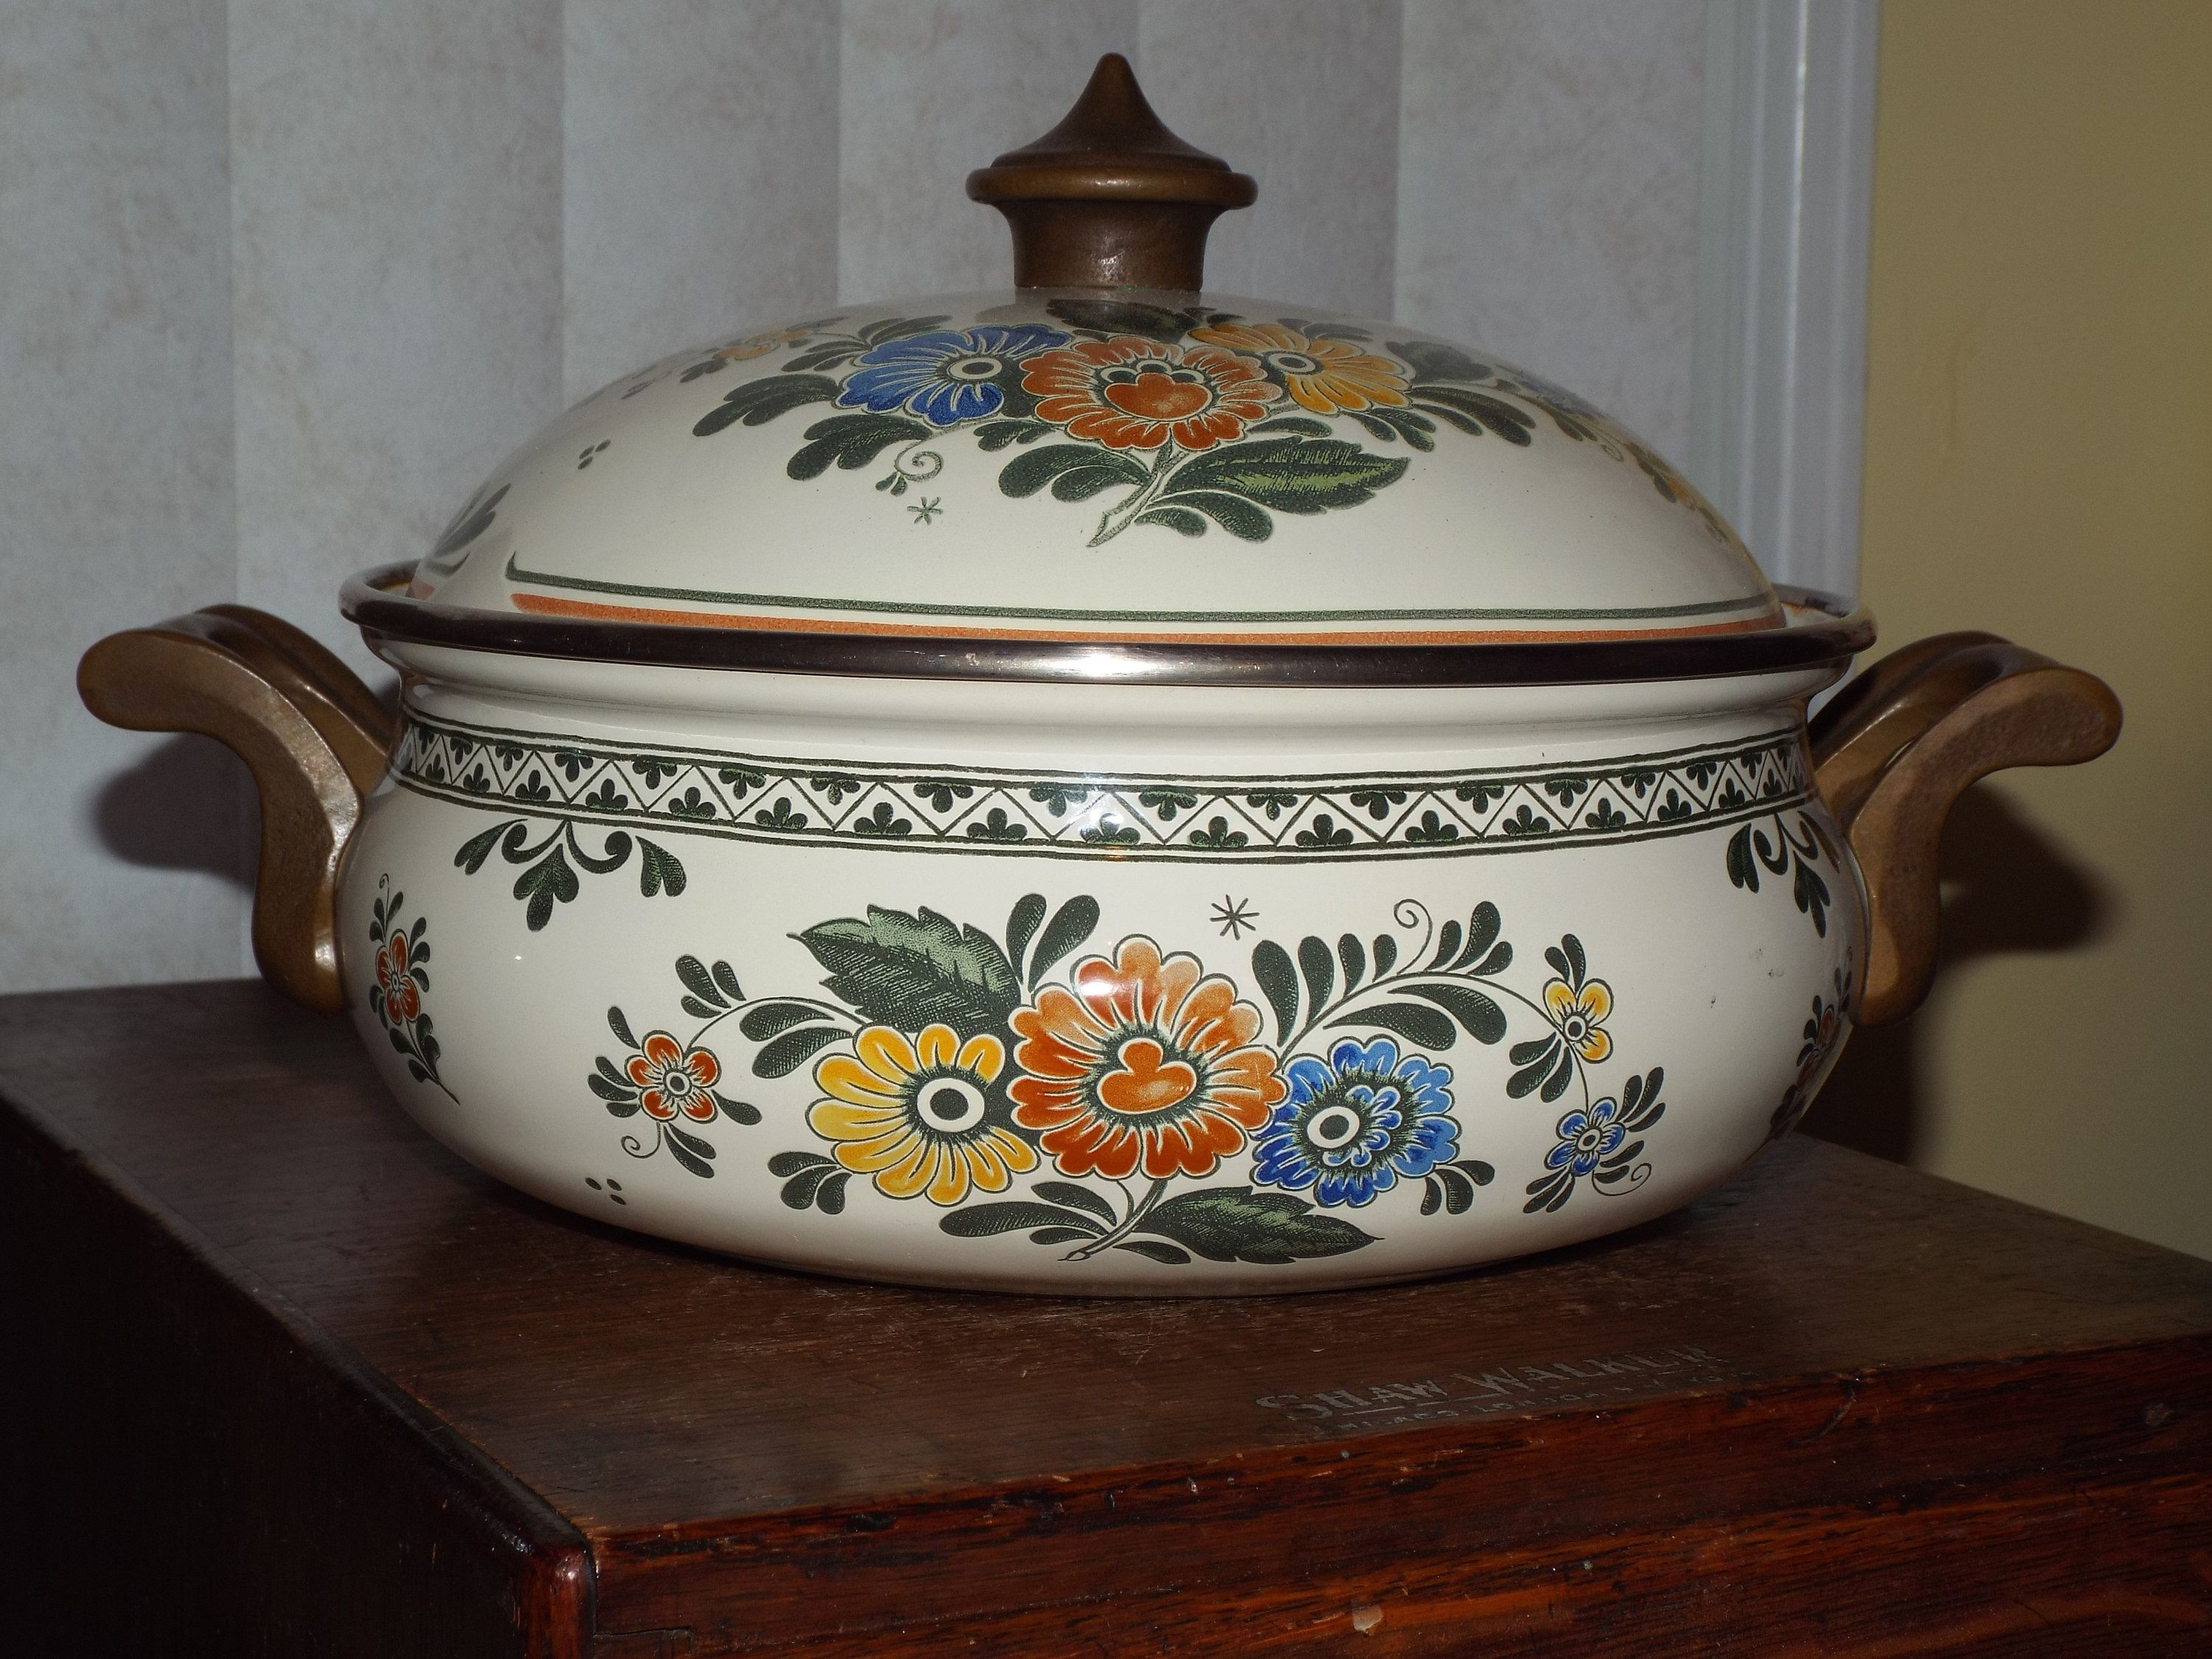 Shabby Deutsch 1970s German Enamel Cookware 1970s Housewares In 2019 My Shabby